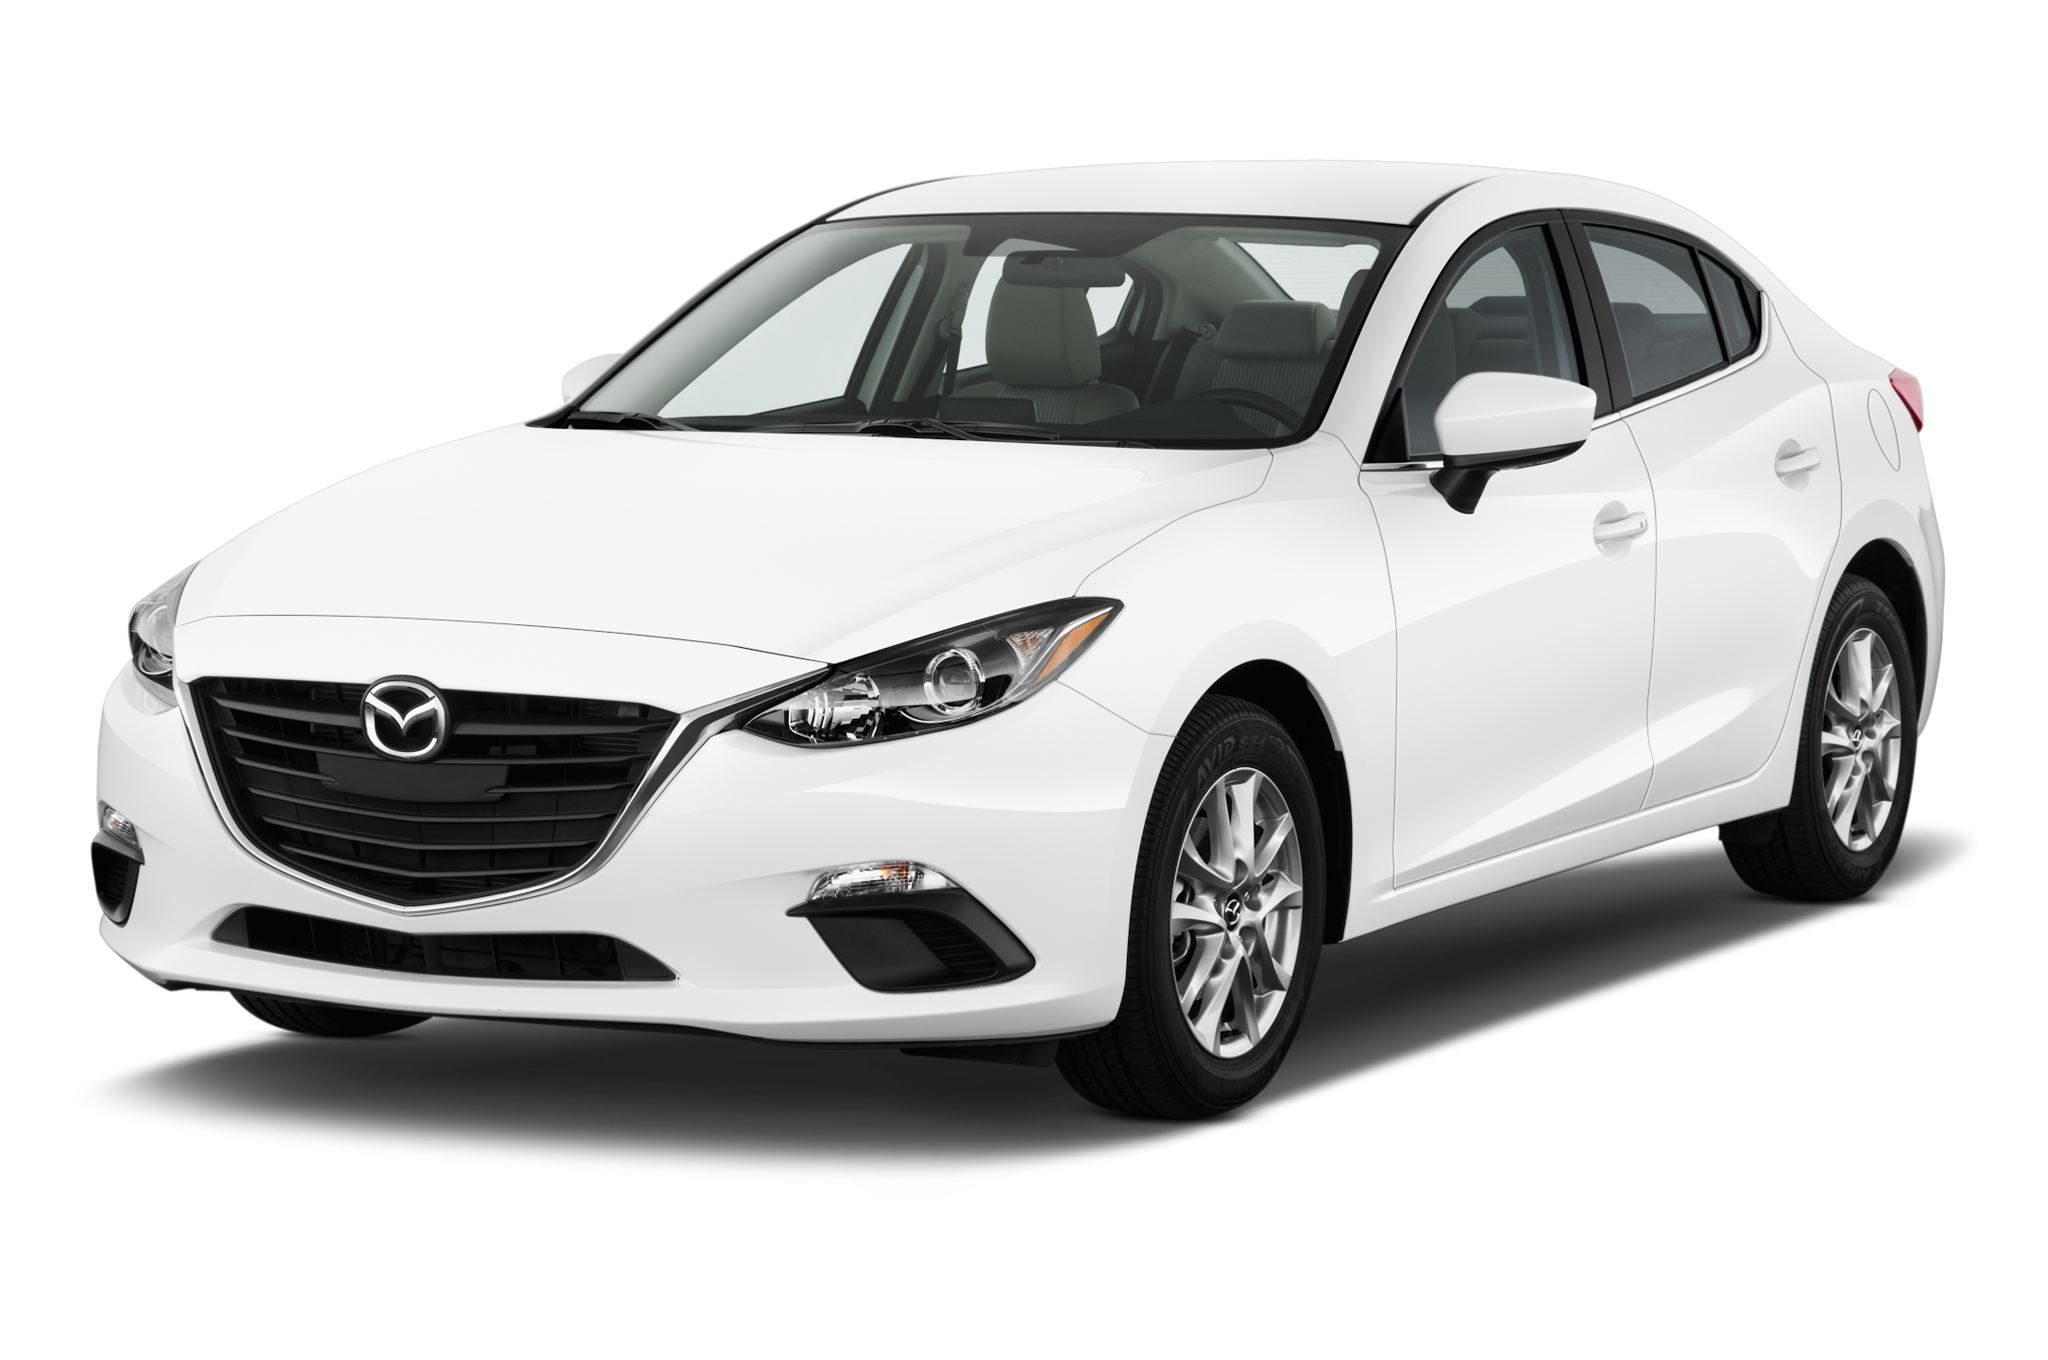 2015 Mazda3 I Sv >> 2016 Mazda3 Adds Standard Backup Camera, Base SV Trim Discontinued